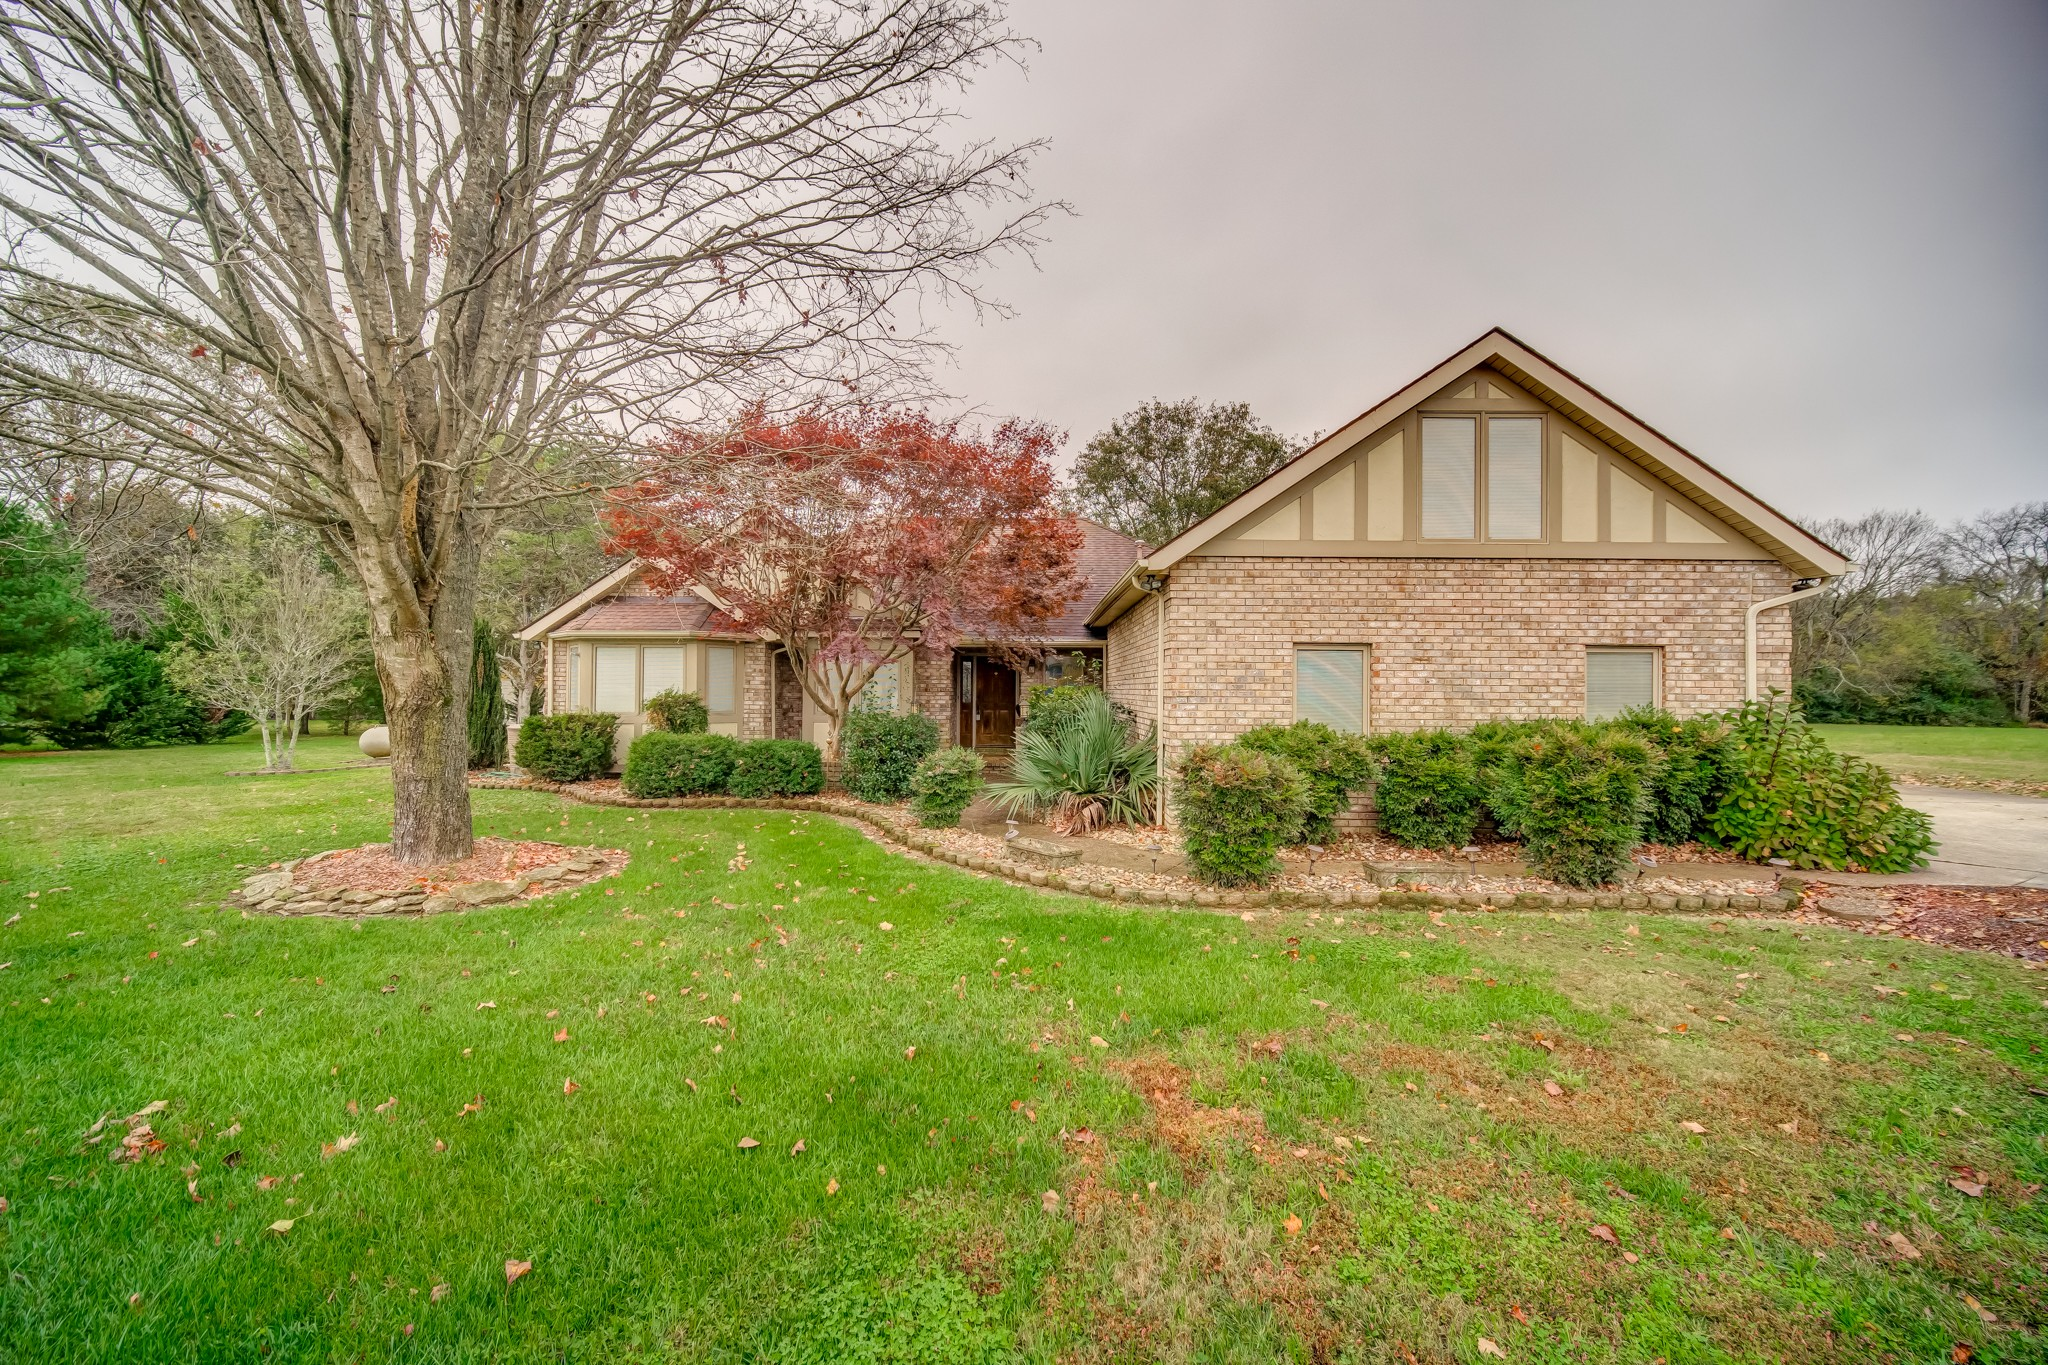 Welcome home. This home offers ample space with a high cathedral ceiling in living room, hardwood floors, 3 bedrooms, a bonus room, and an office. It sits on a level 1 acre lot with a beautiful country setting. Home is perfect for entertainment! No HOA!